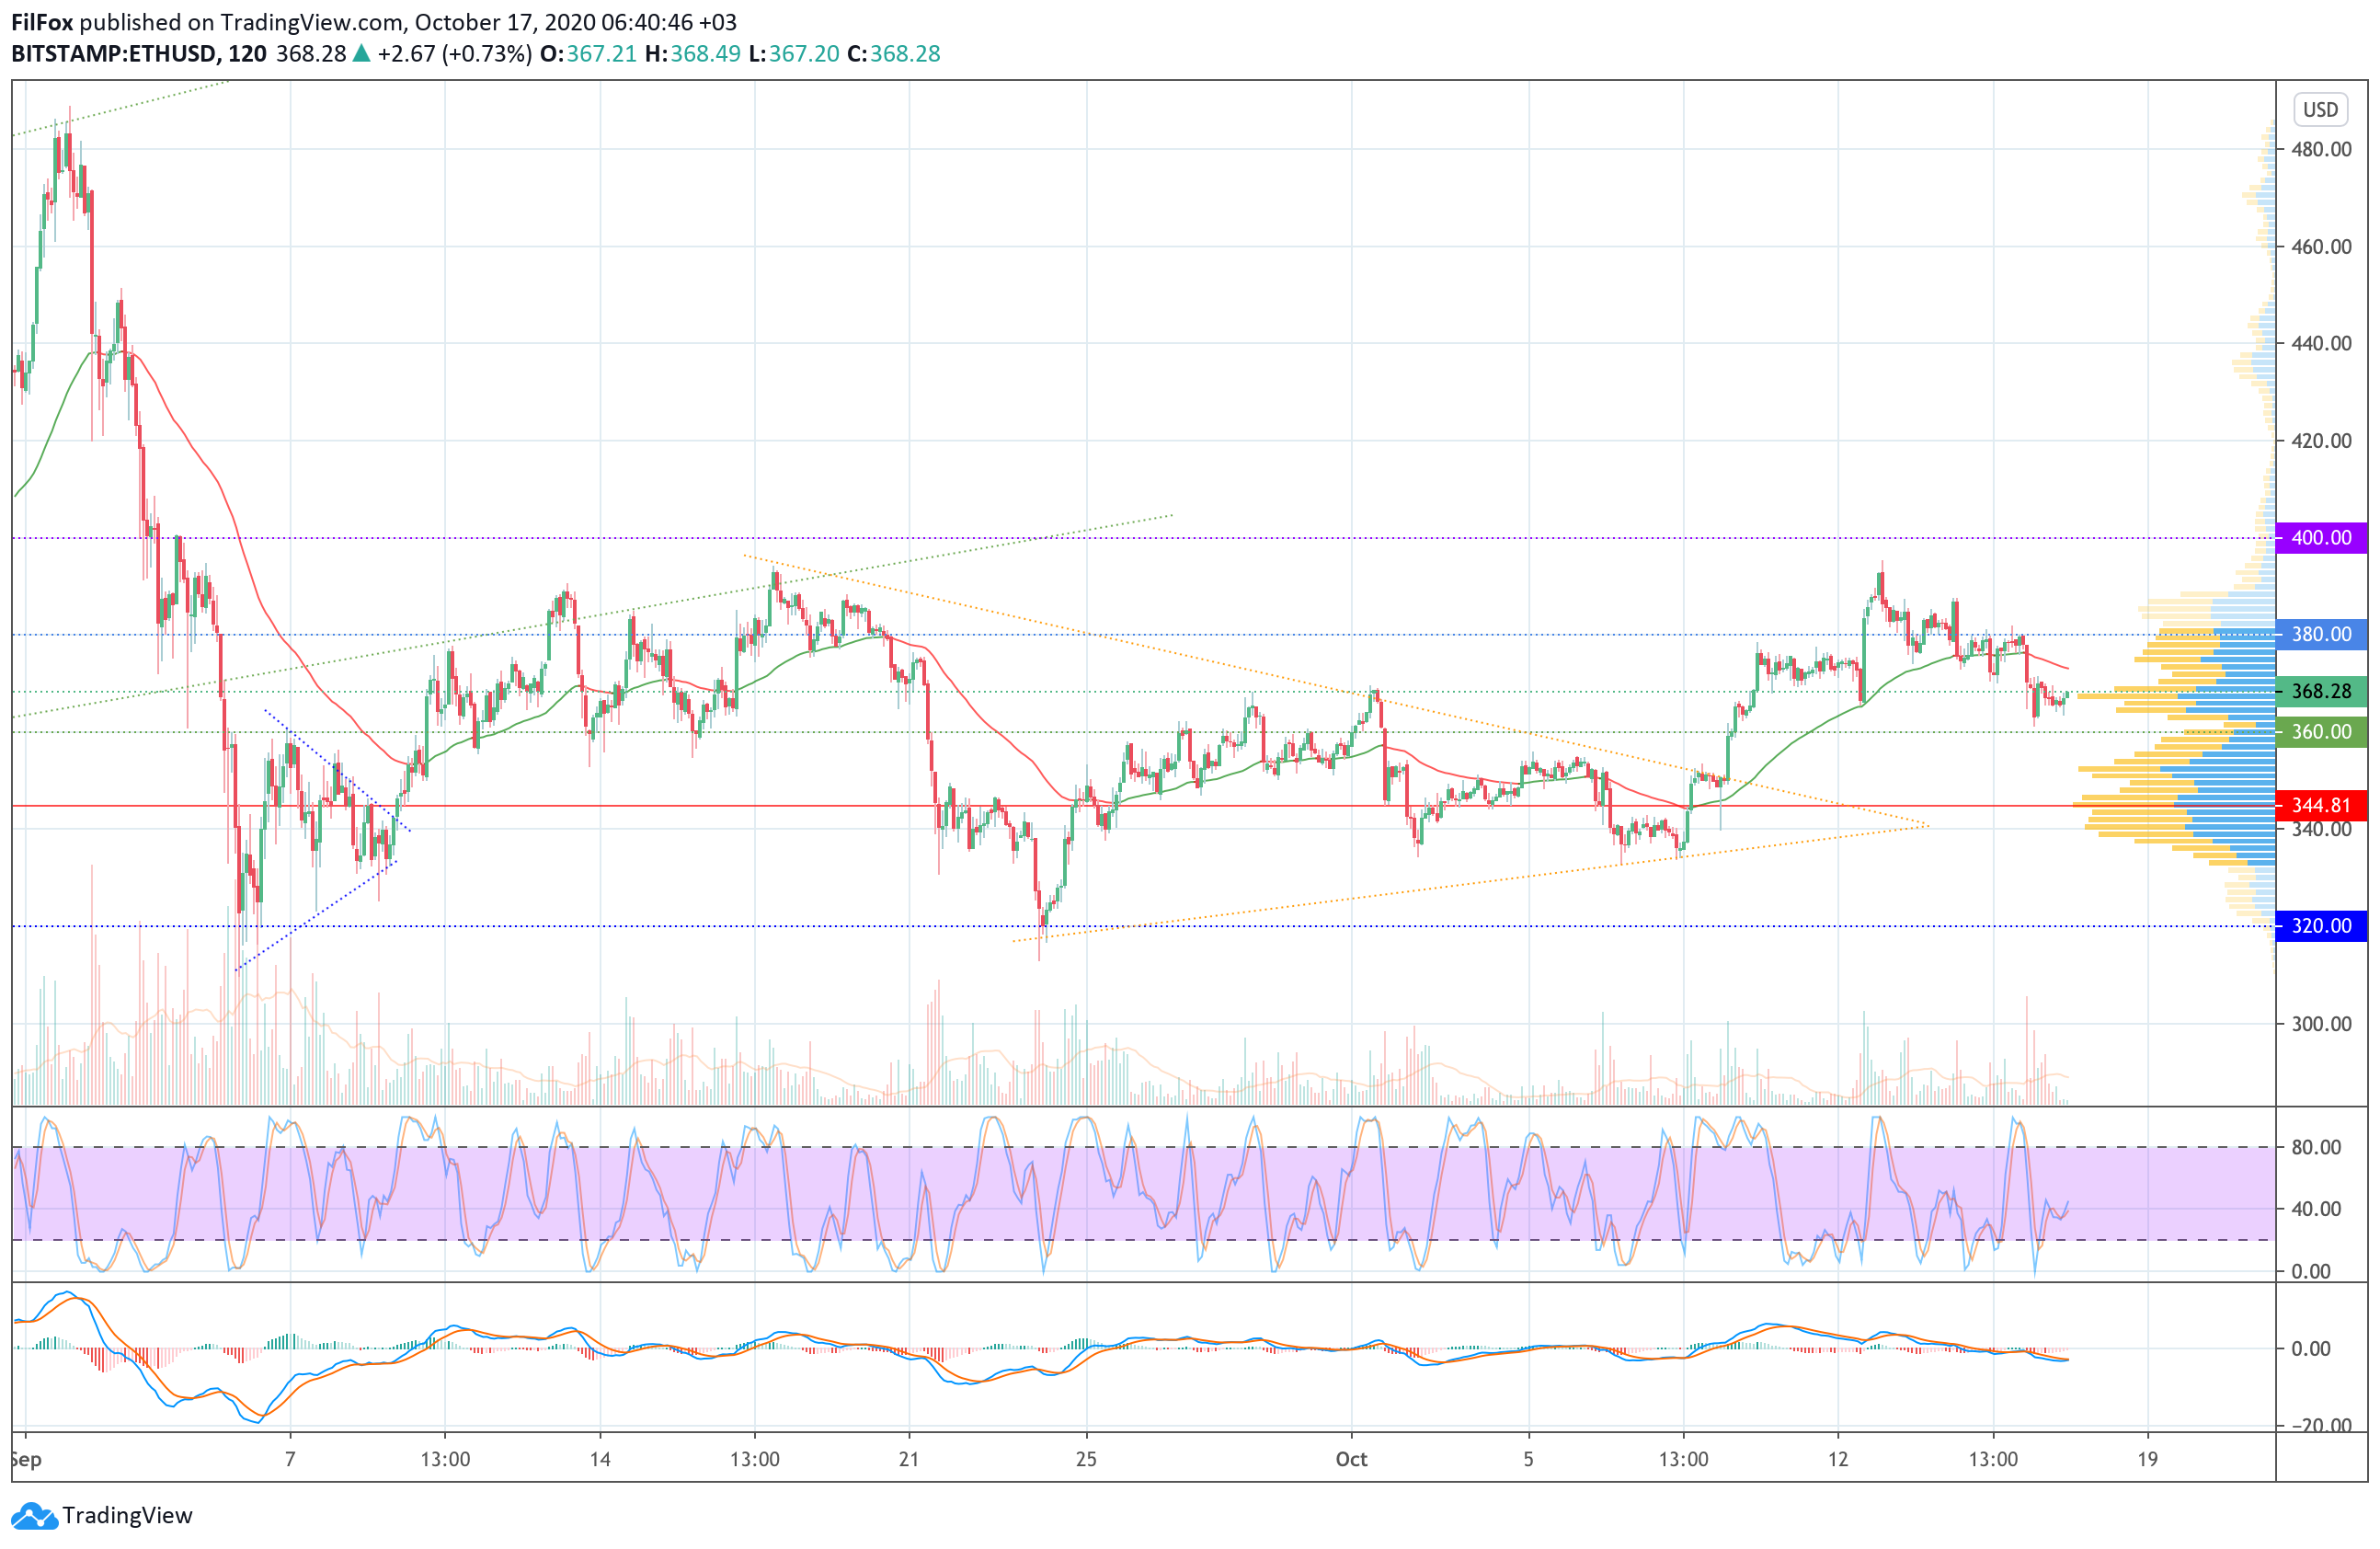 Analysis of prices for Bitcoin, Ethereum, XRP for 10/17/2020